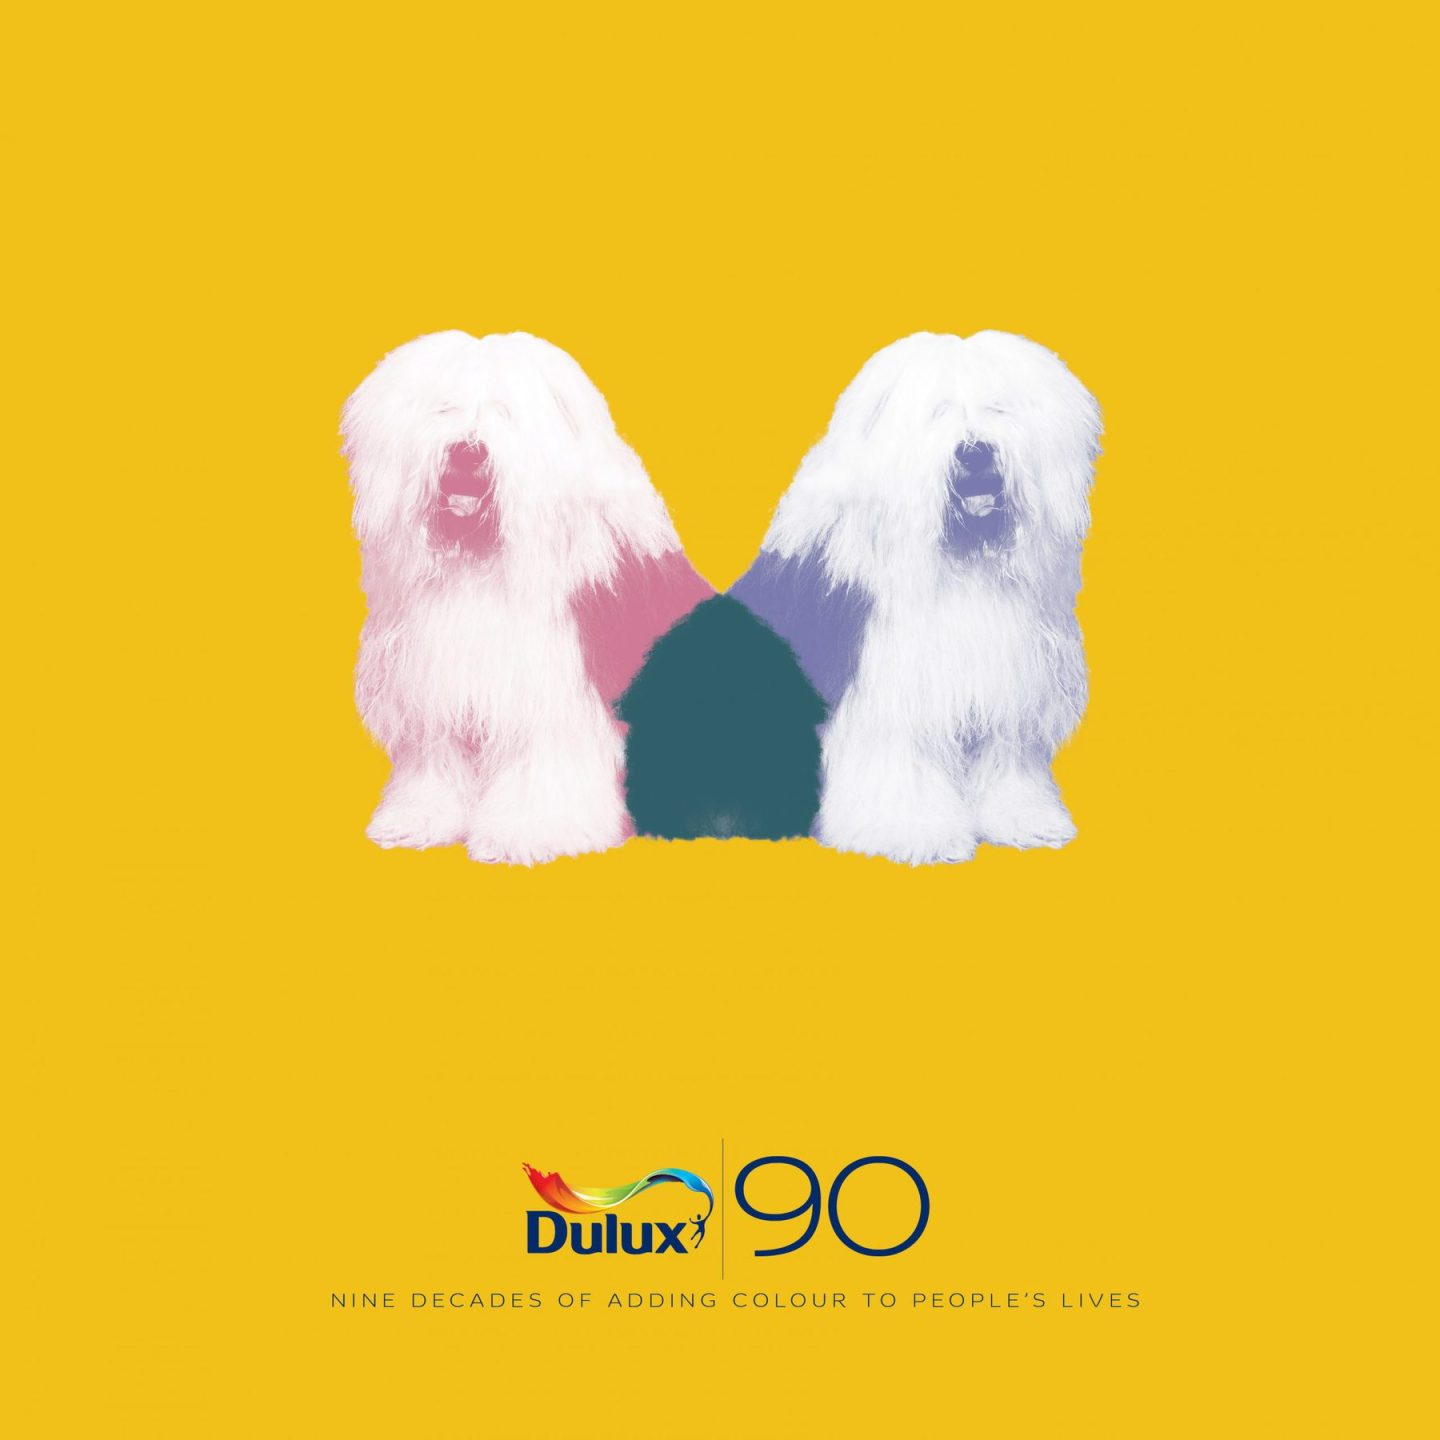 dulux is 90 anniversary book